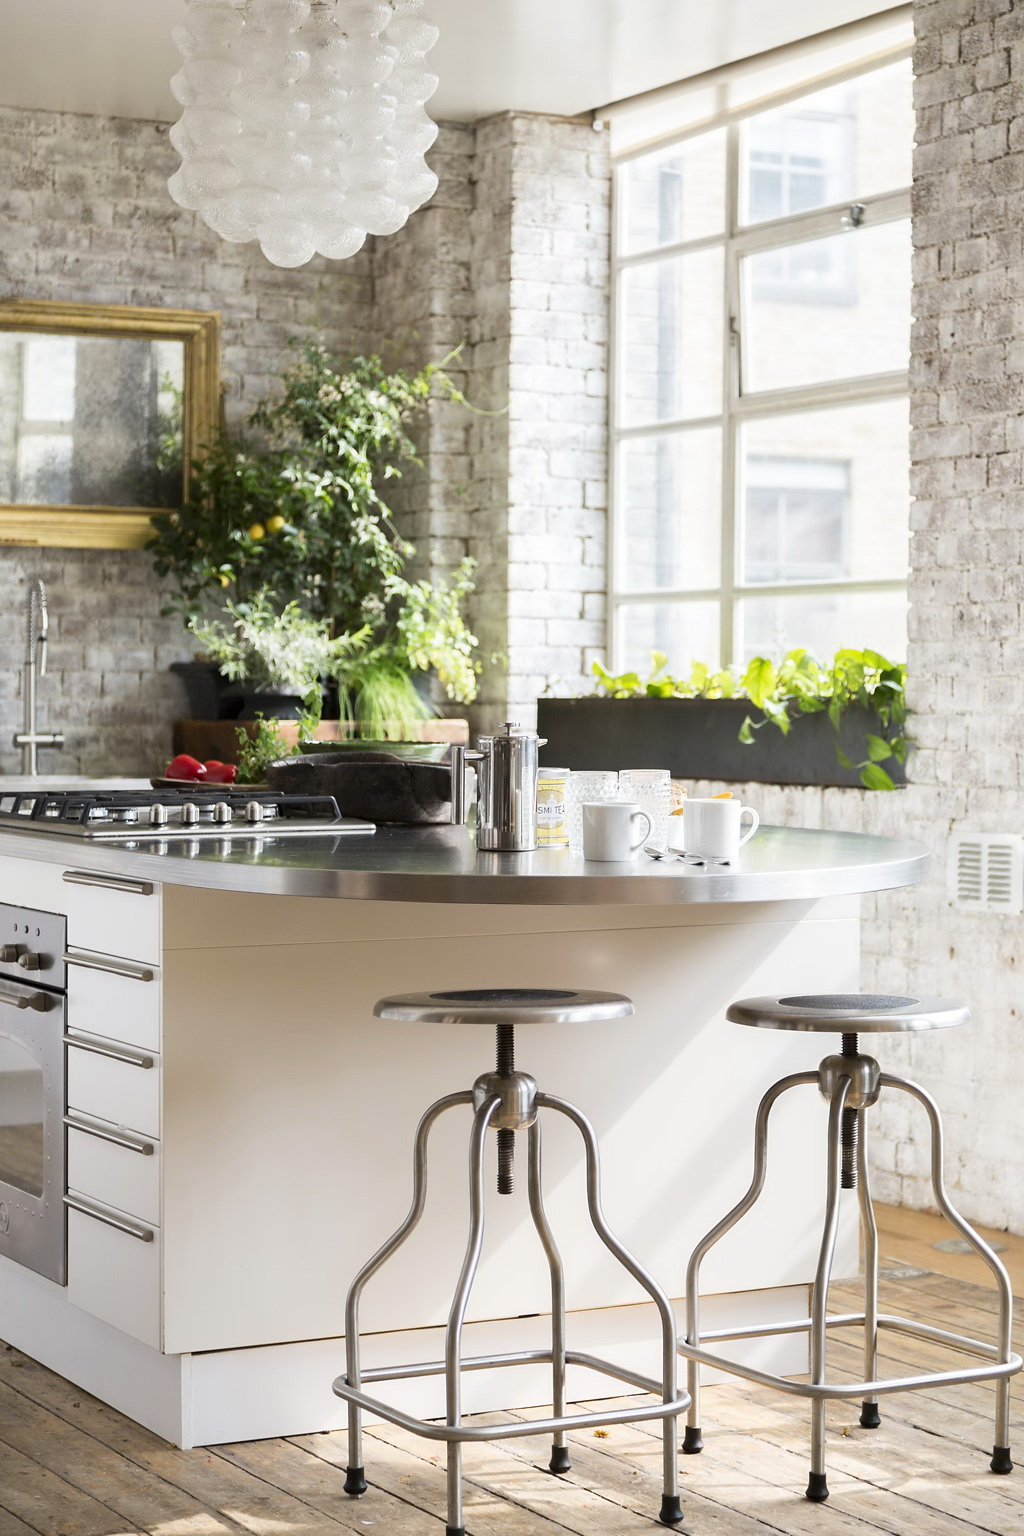 Onefinestay London Nile Street Shoreditch 7